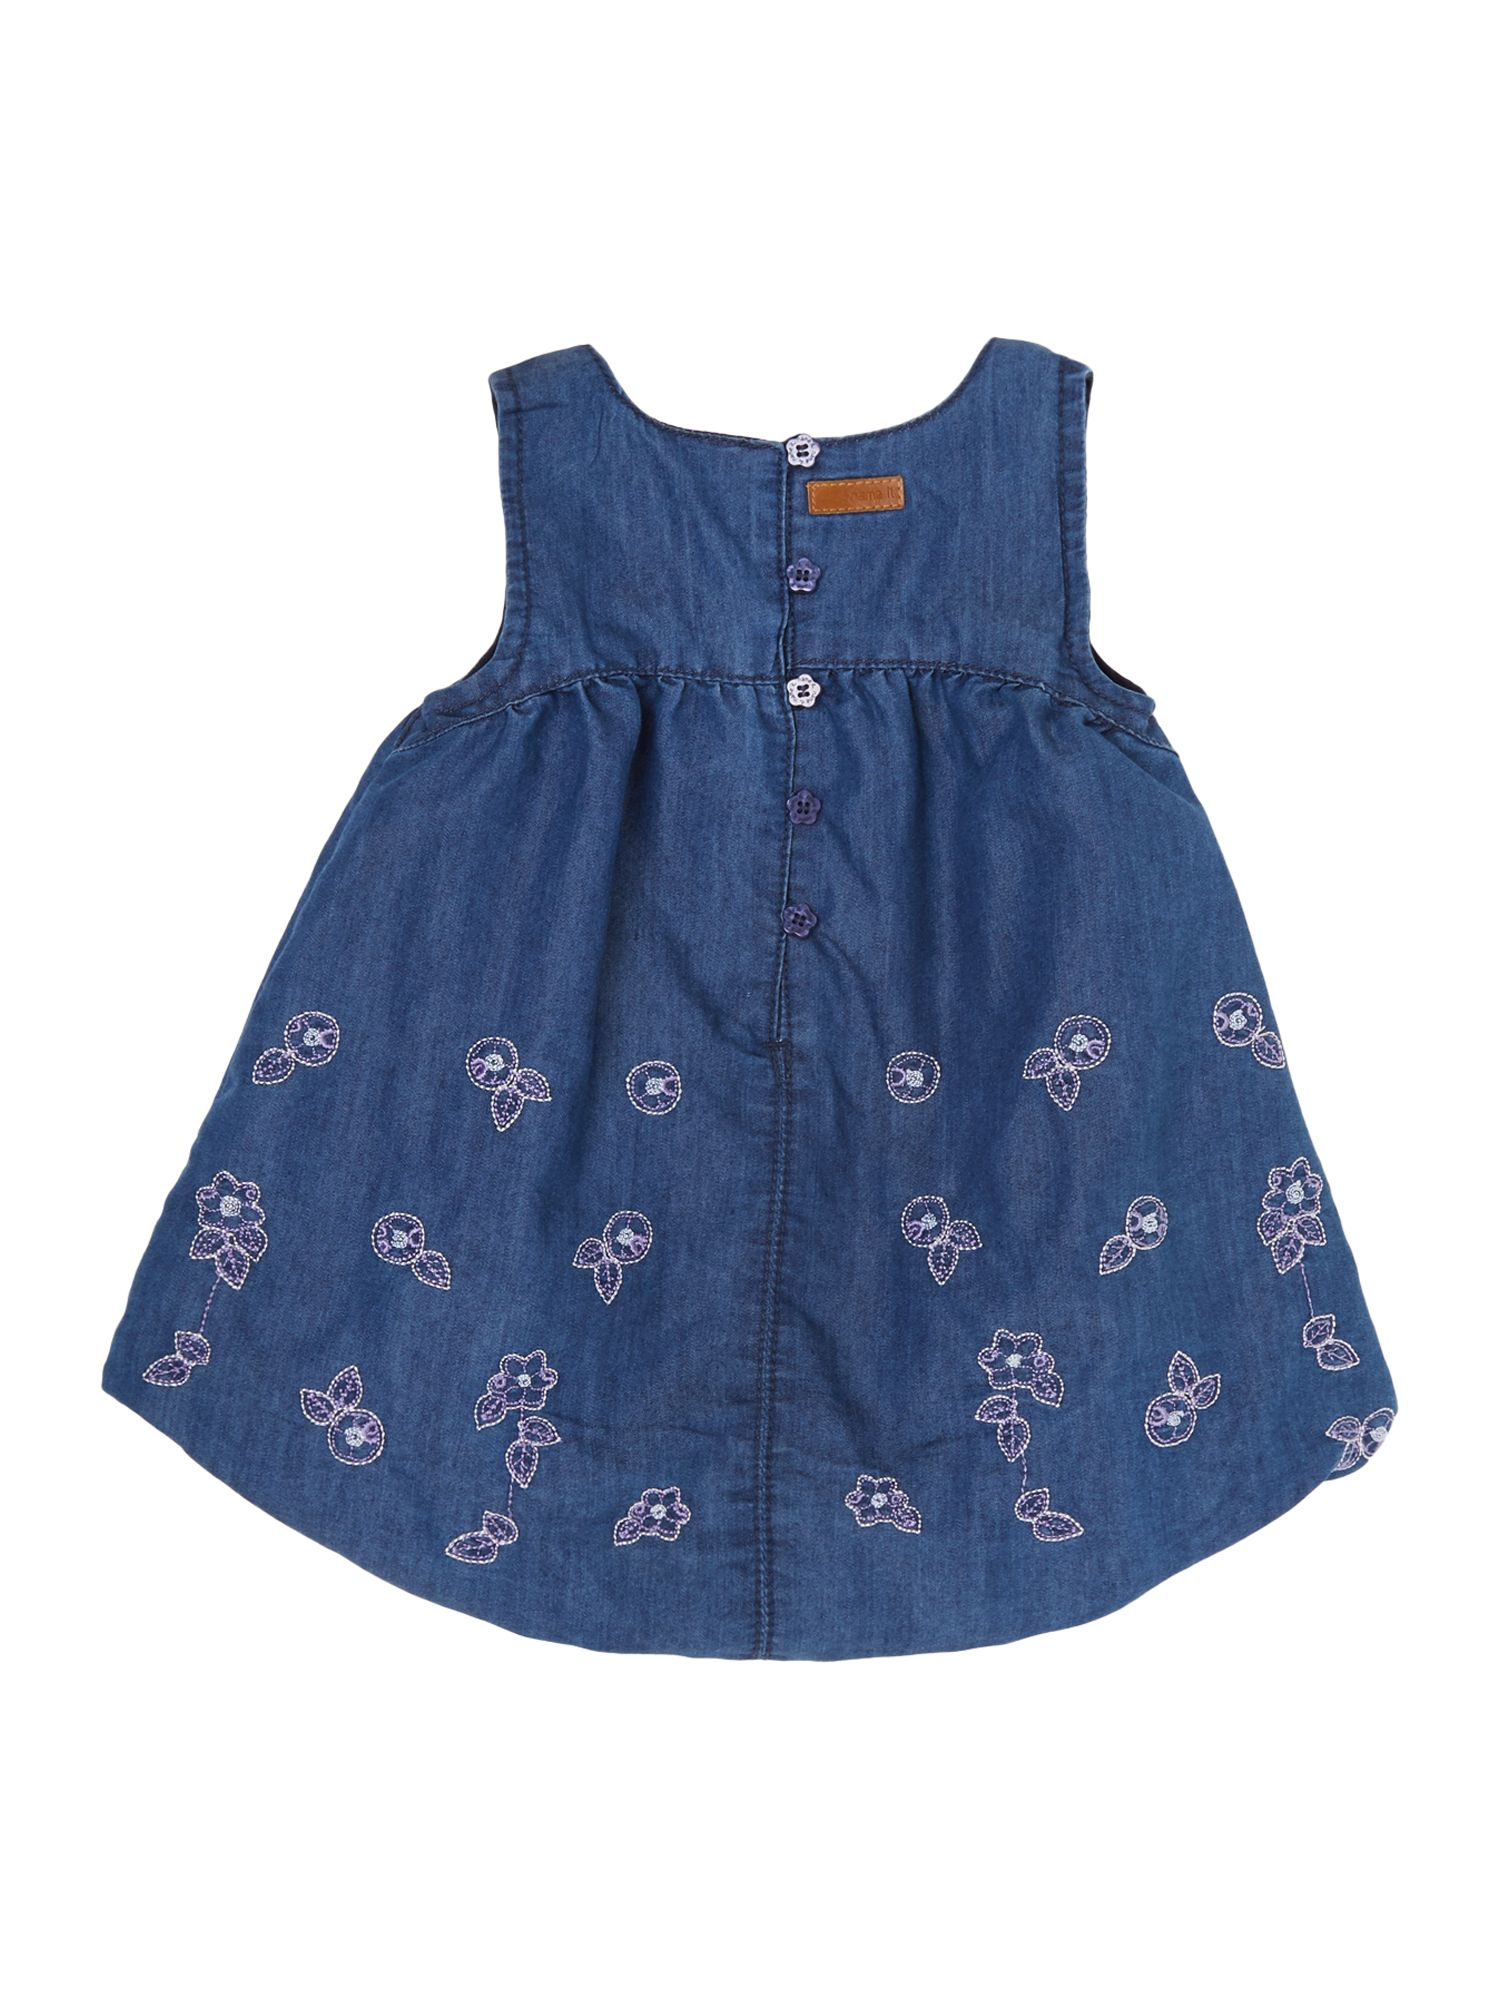 Girls denim puff dress with embroidery